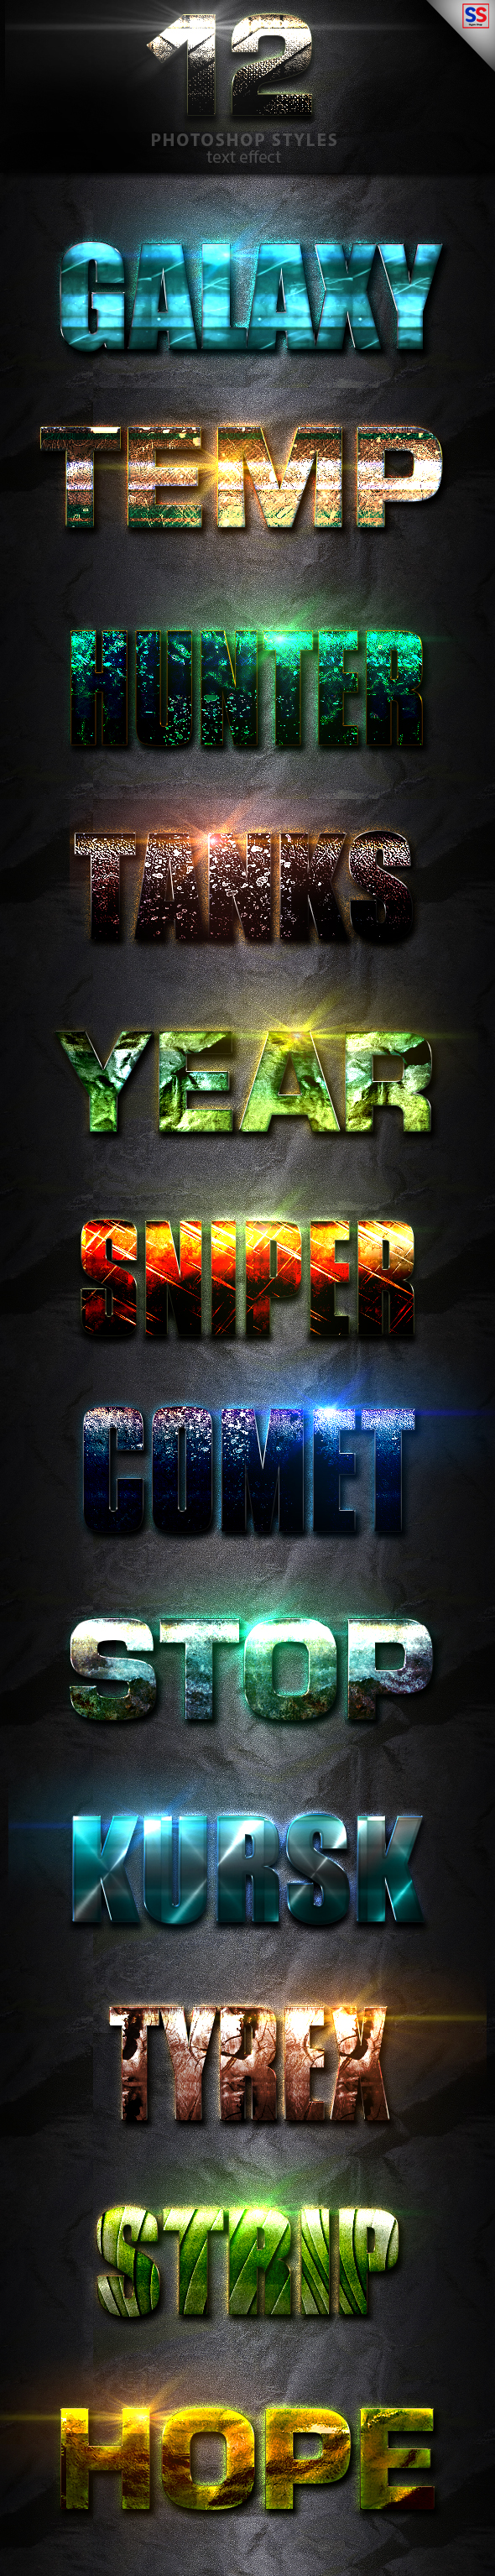 12 Light Photoshop text Effect Vol 13 - Text Effects Styles